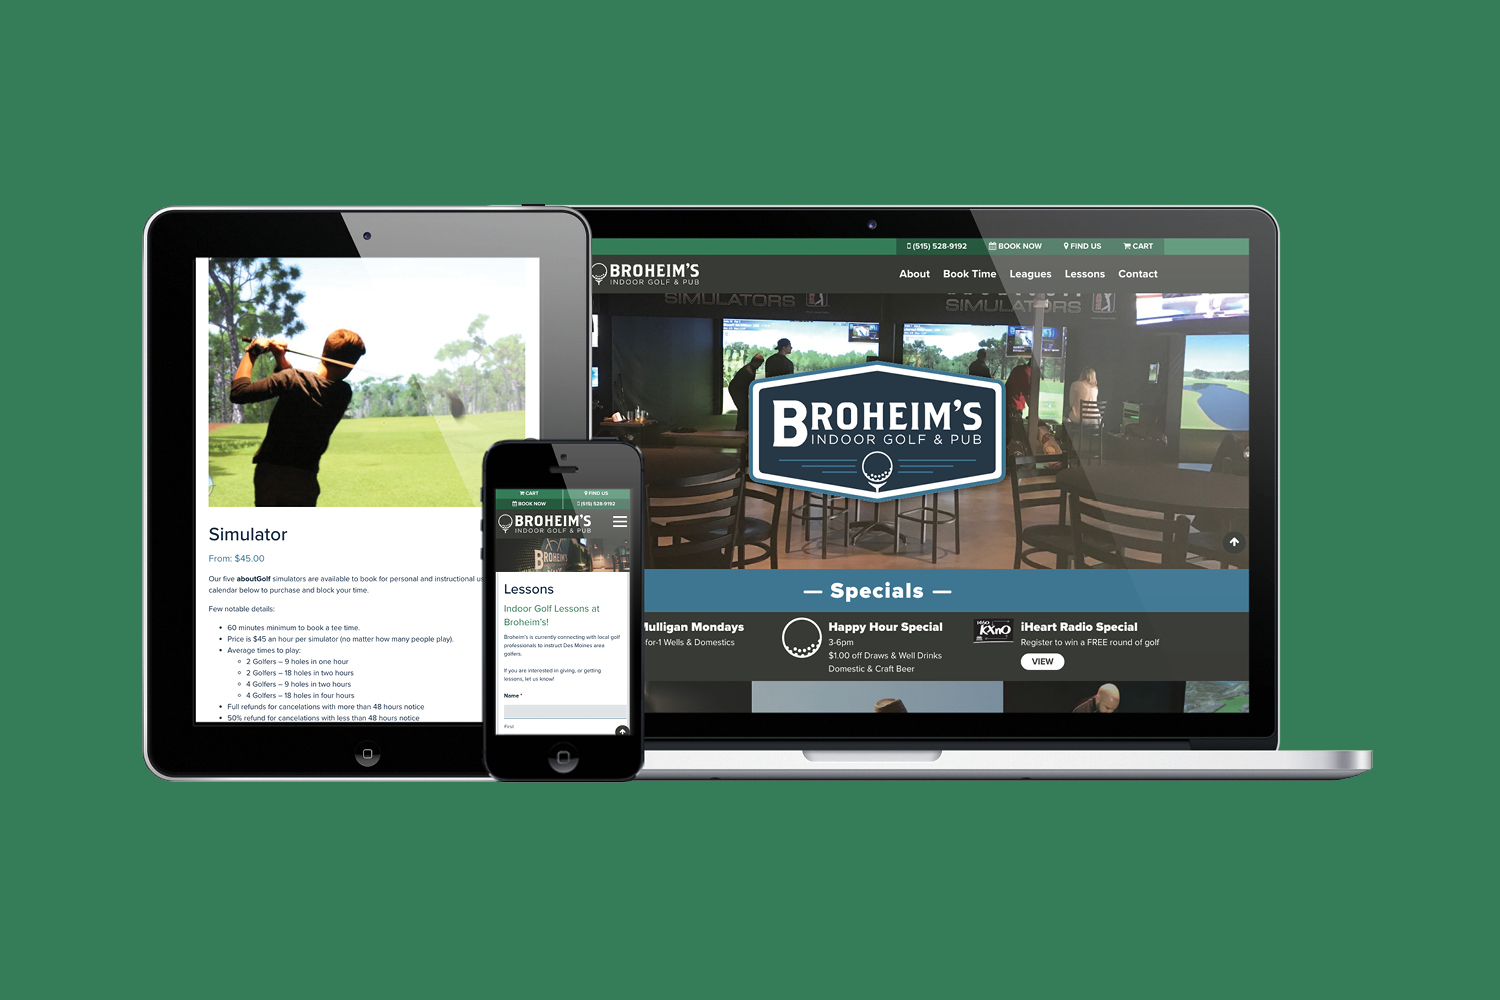 farmboy-iowa-broheims-golf-bar-web-design-mockup